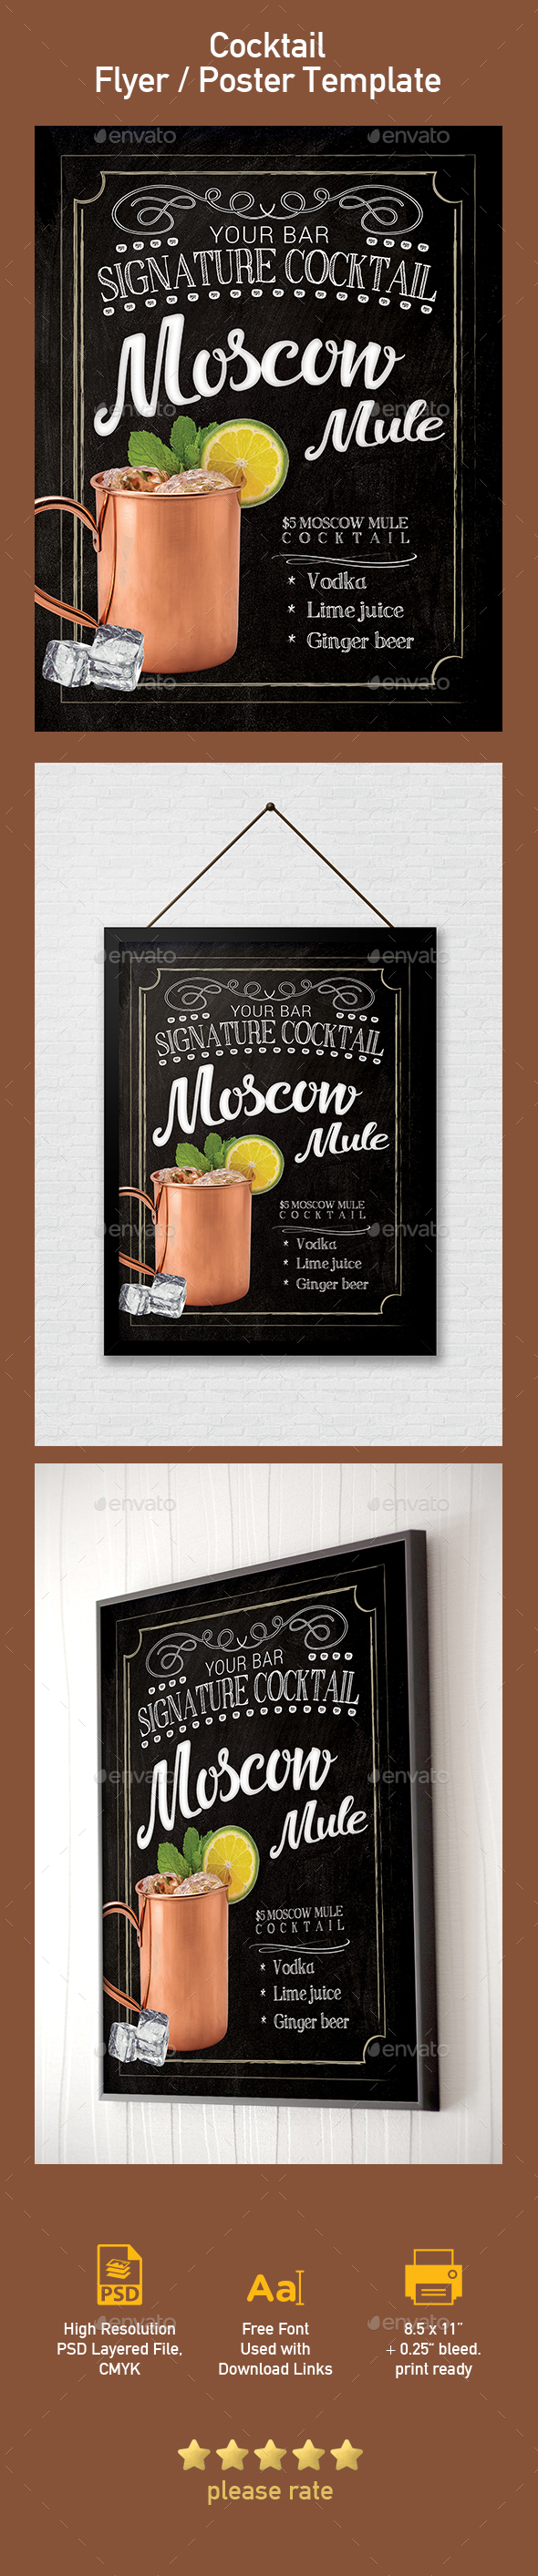 Moscow Mule Cocktail Flyer Template - Events Flyers